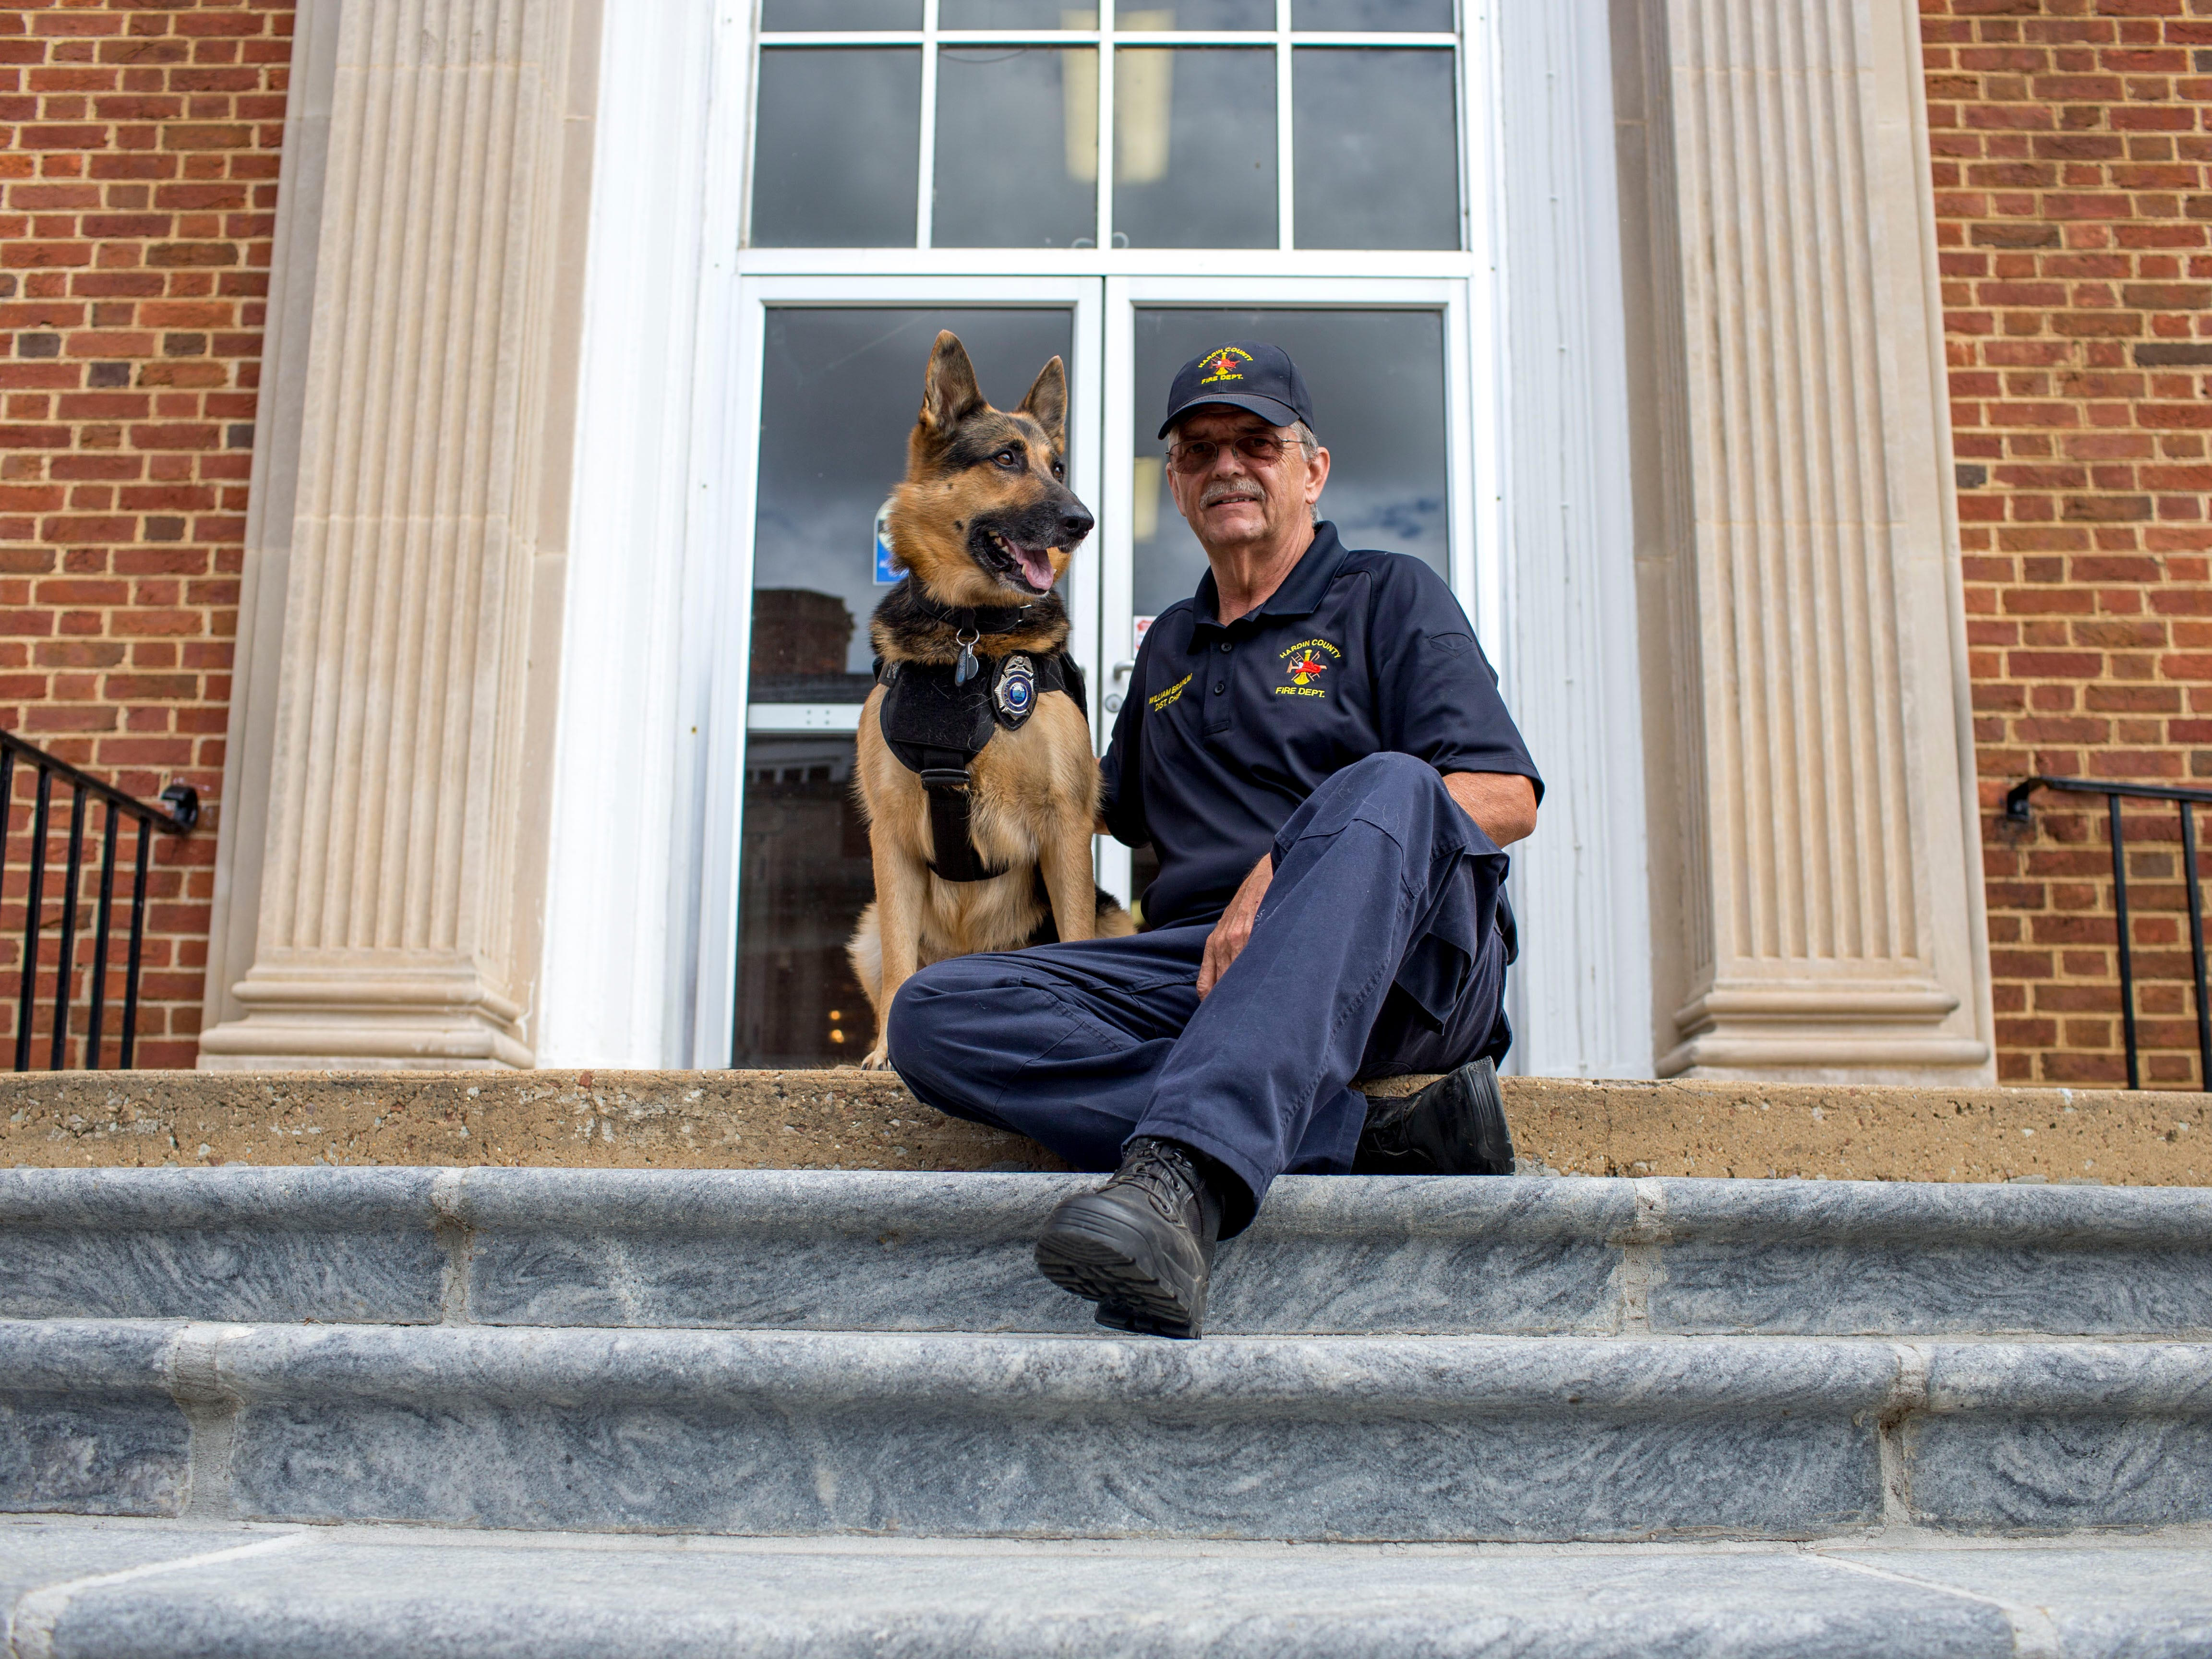 William Branum, the Hardin County fire district 14 chief, right, sits with his partner Jodi-Le at the steps outside Hardin County Circuit Court in Savannah, Tenn., on Monday, Sept. 17, 2018.